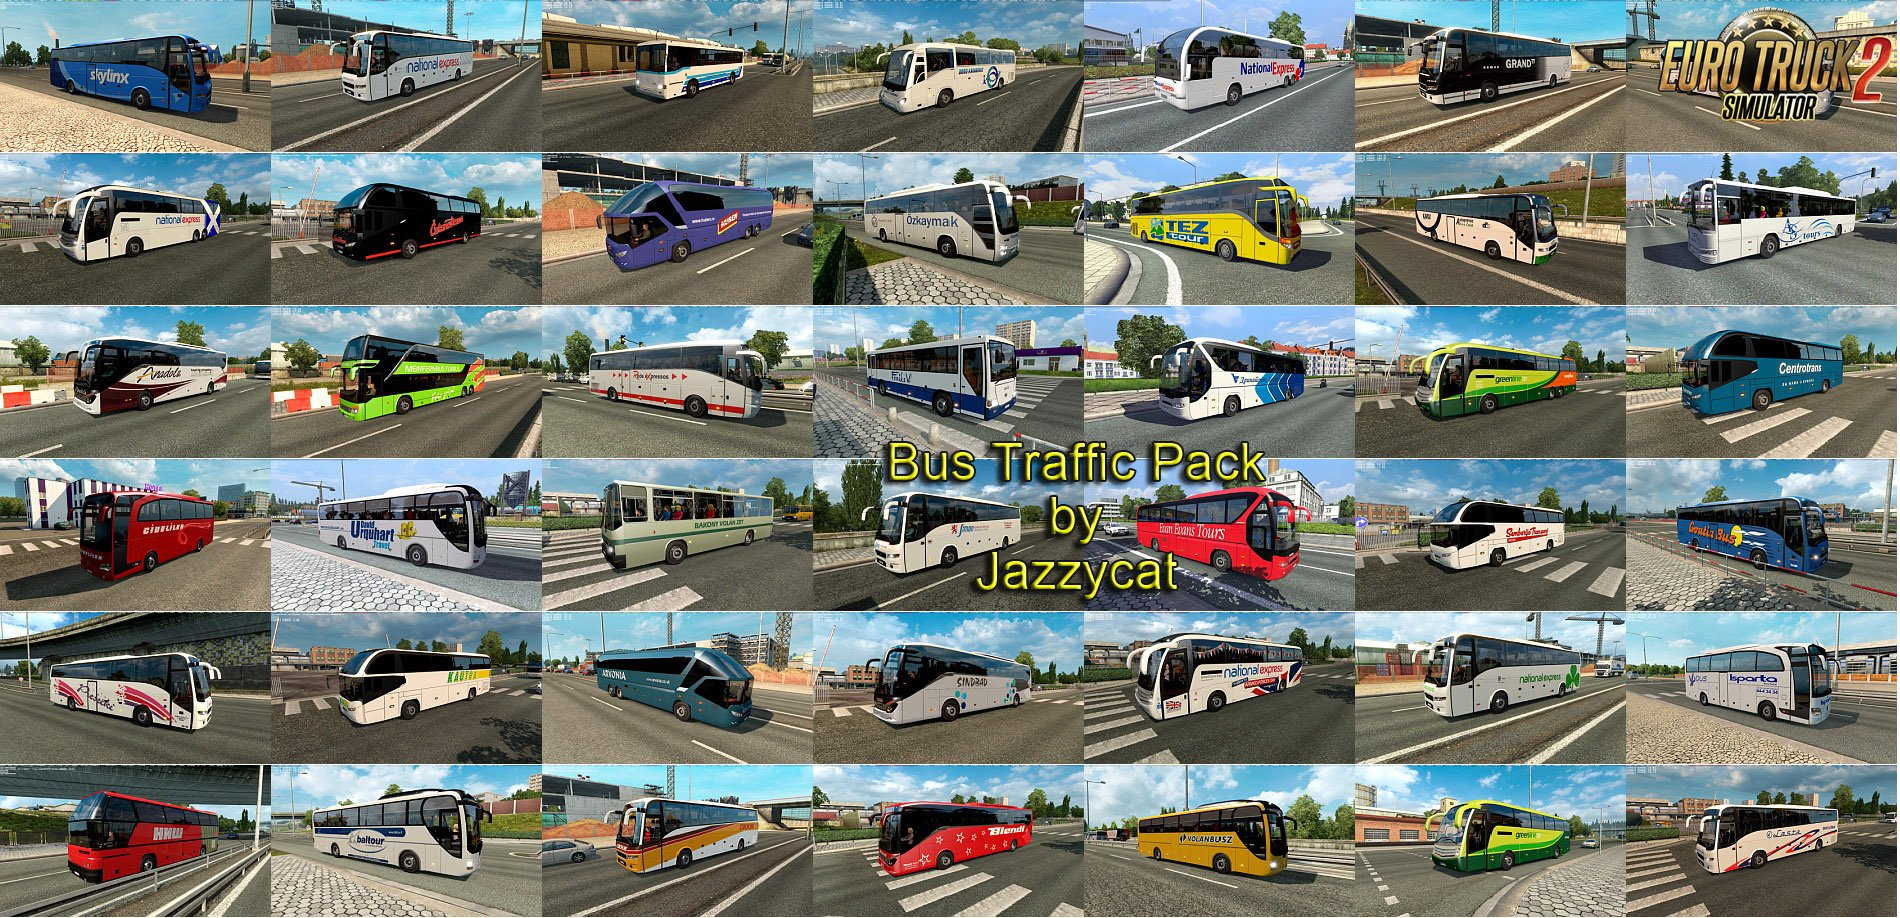 Bus Traffic Pack v3.1 by Jazzycat